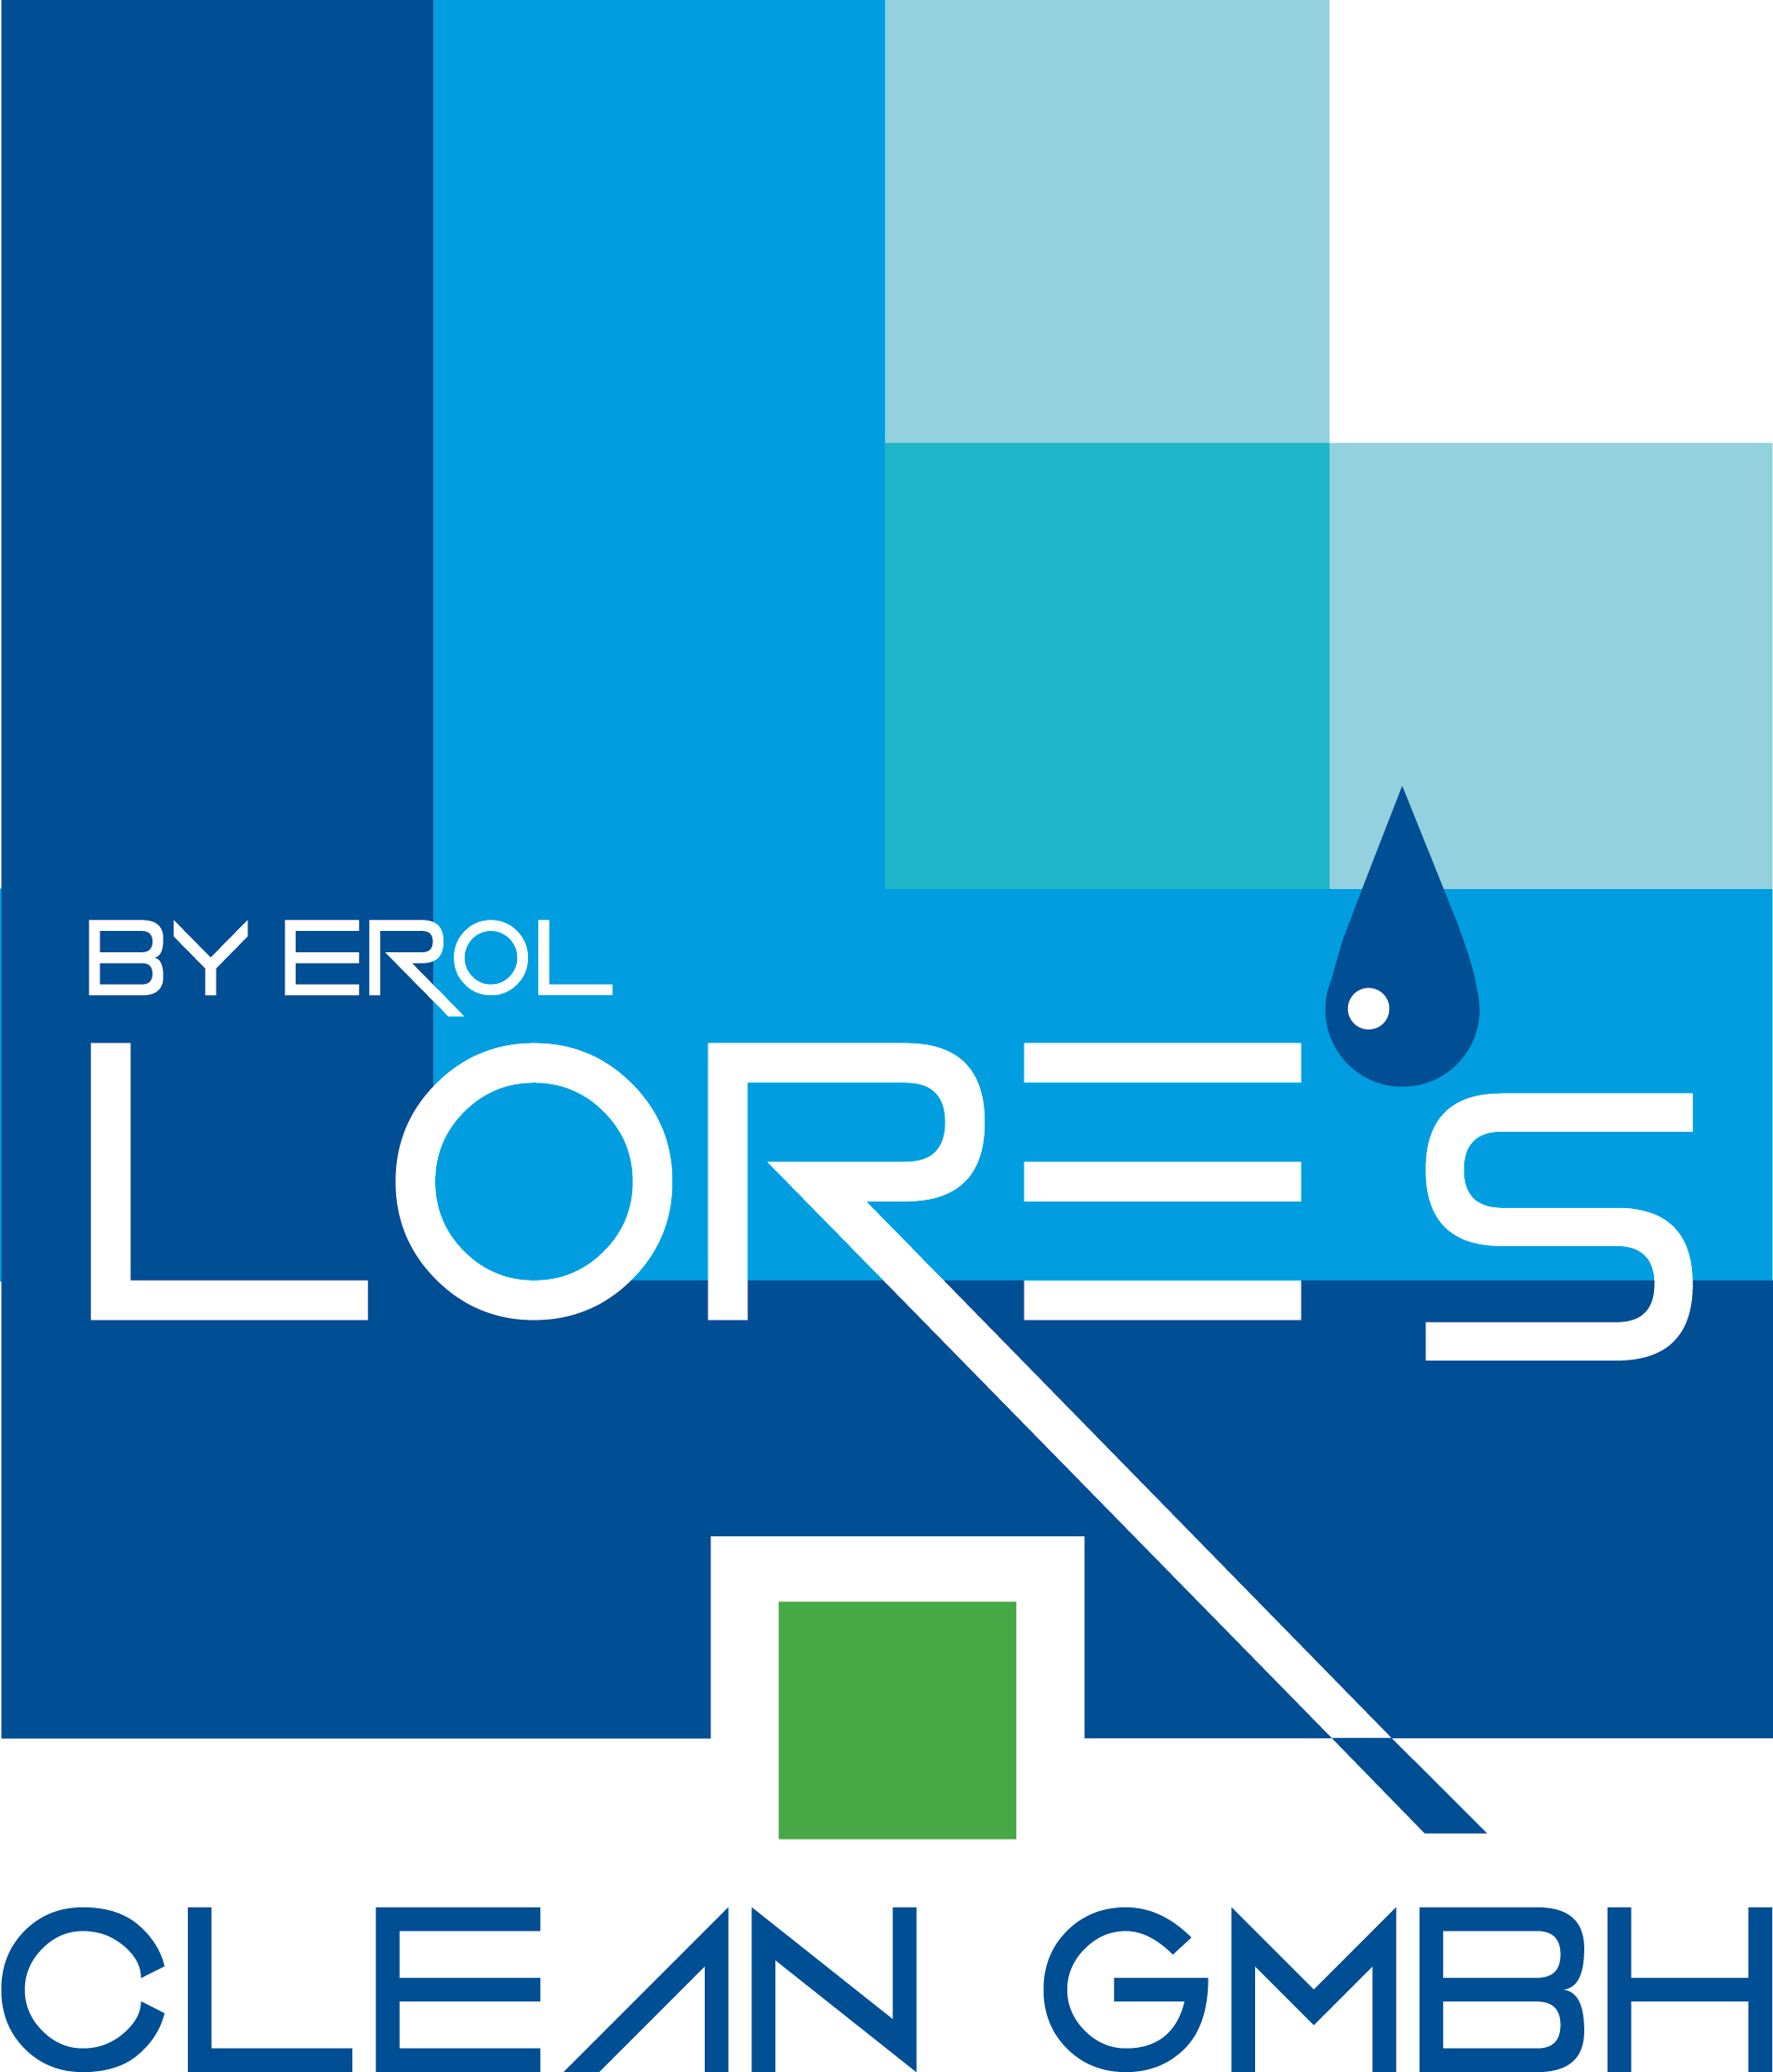 Lores Cleaning GmbH